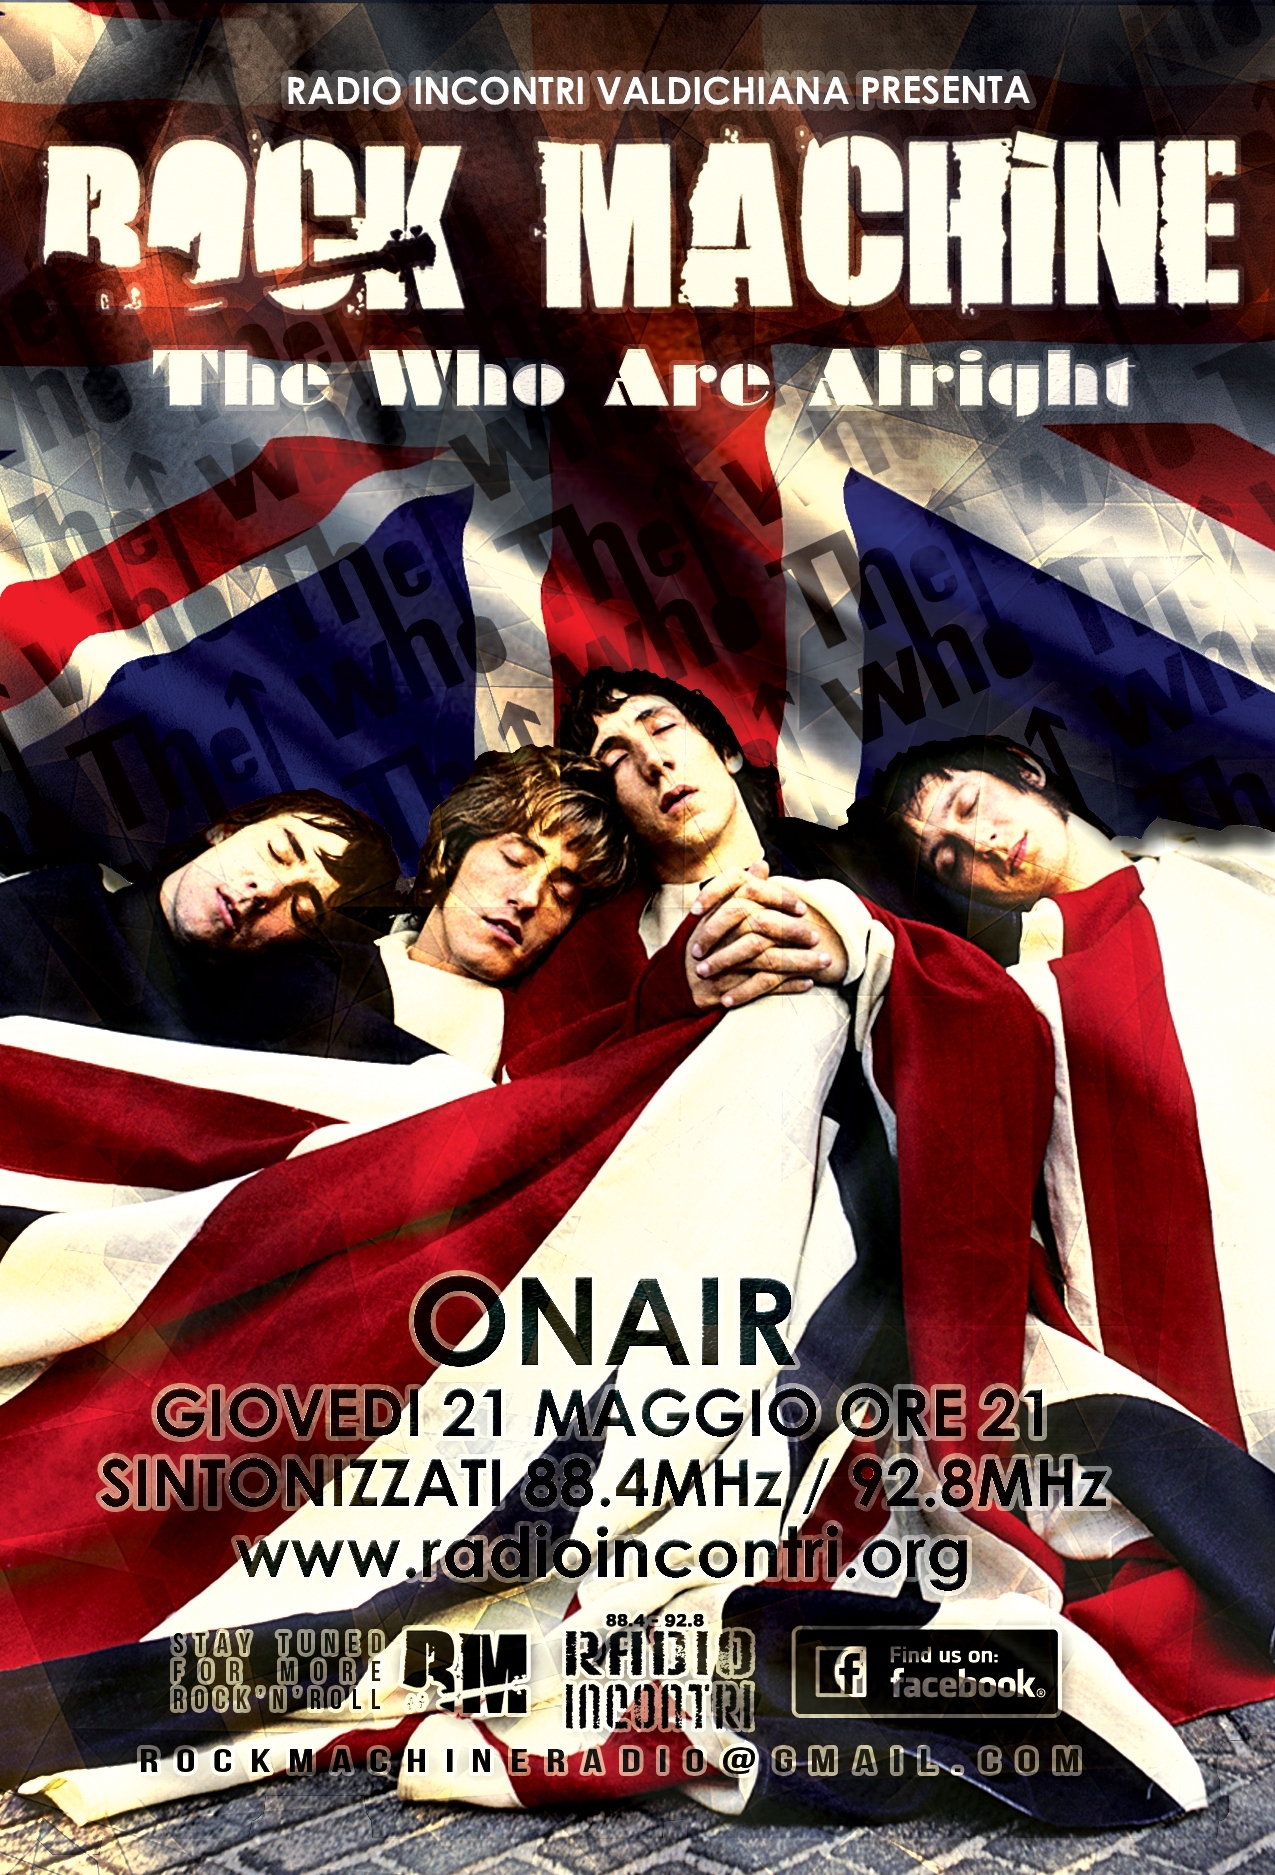 The Who are alright